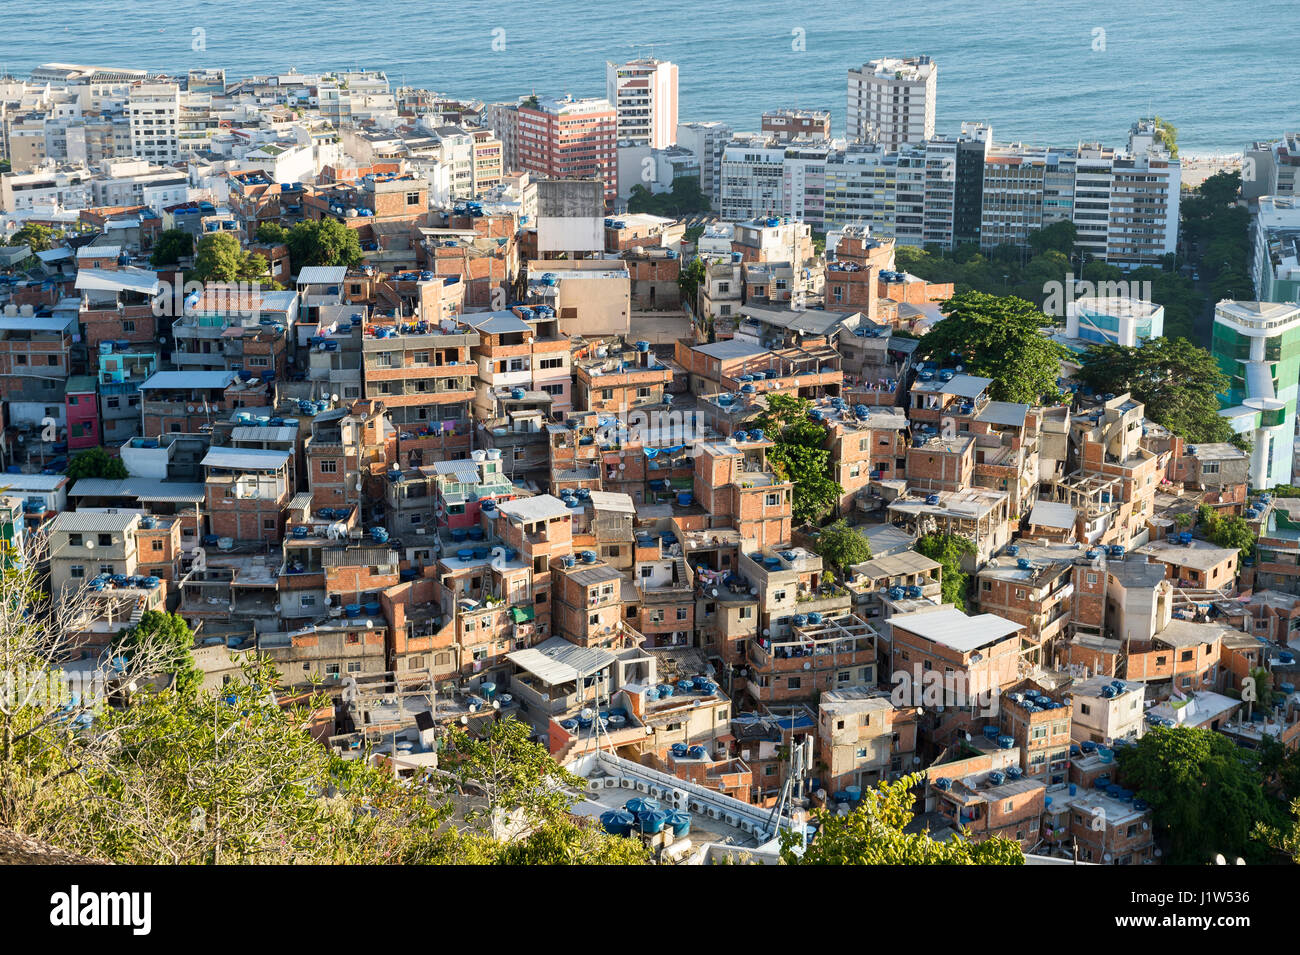 Scenic view over the hillside favela community of Cantagalo overlooking the neighborhood of Ipanema in Rio de Janeiro, - Stock Image